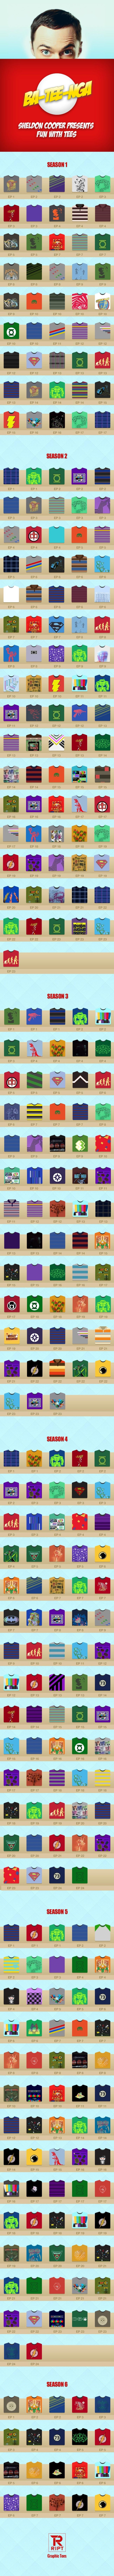 Ba-tee-nga: Sheldon Cooper Presents Fun With Tees infographic